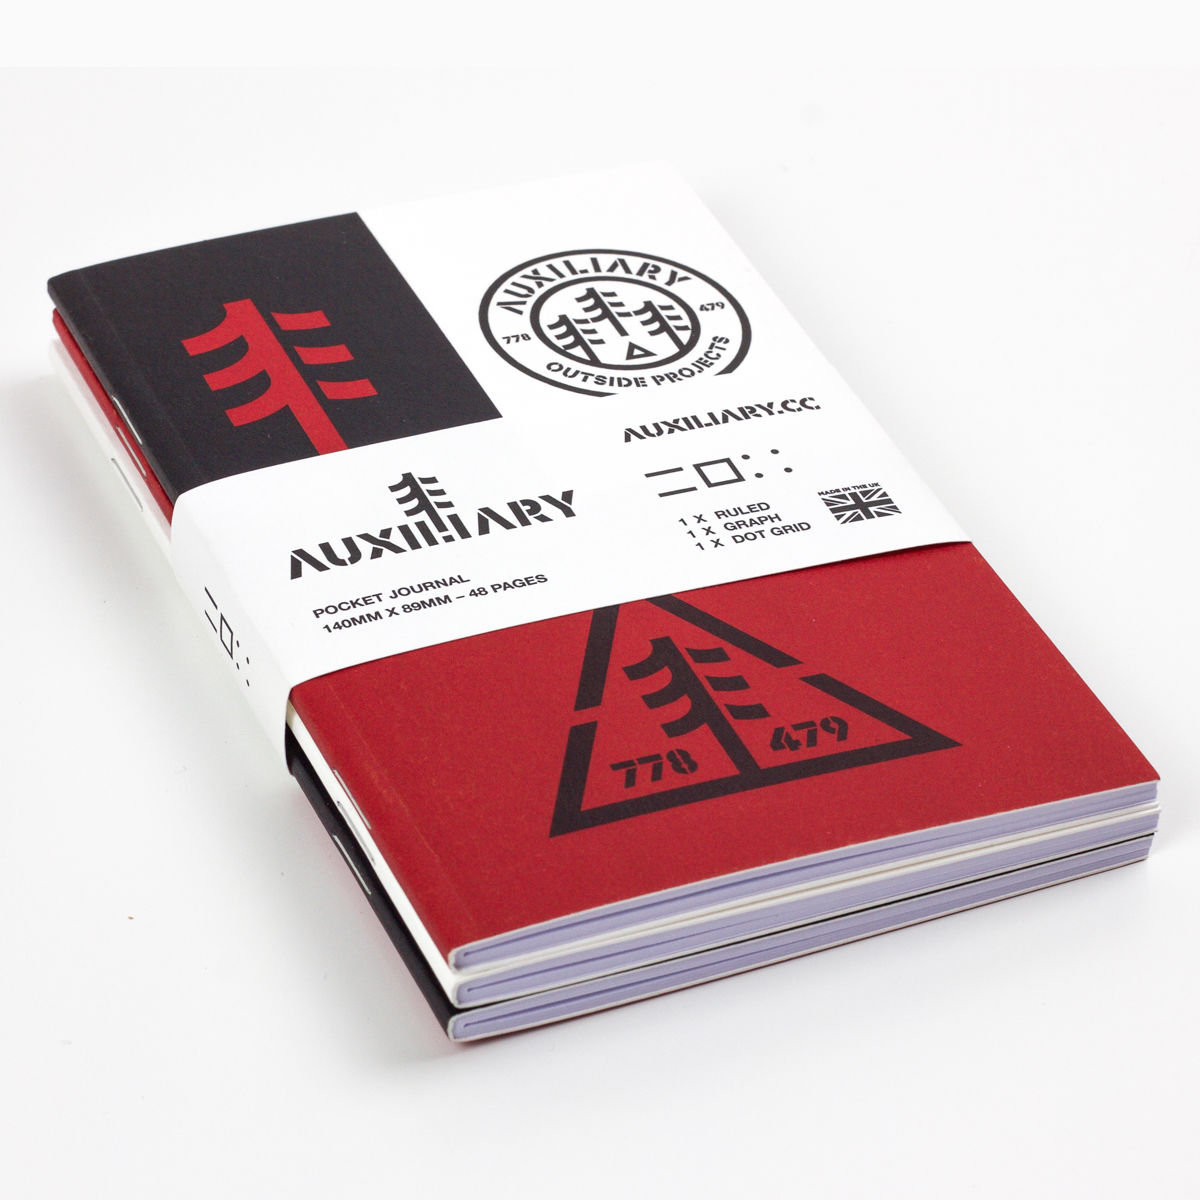 Auxiliary - Pocket Journal - product image